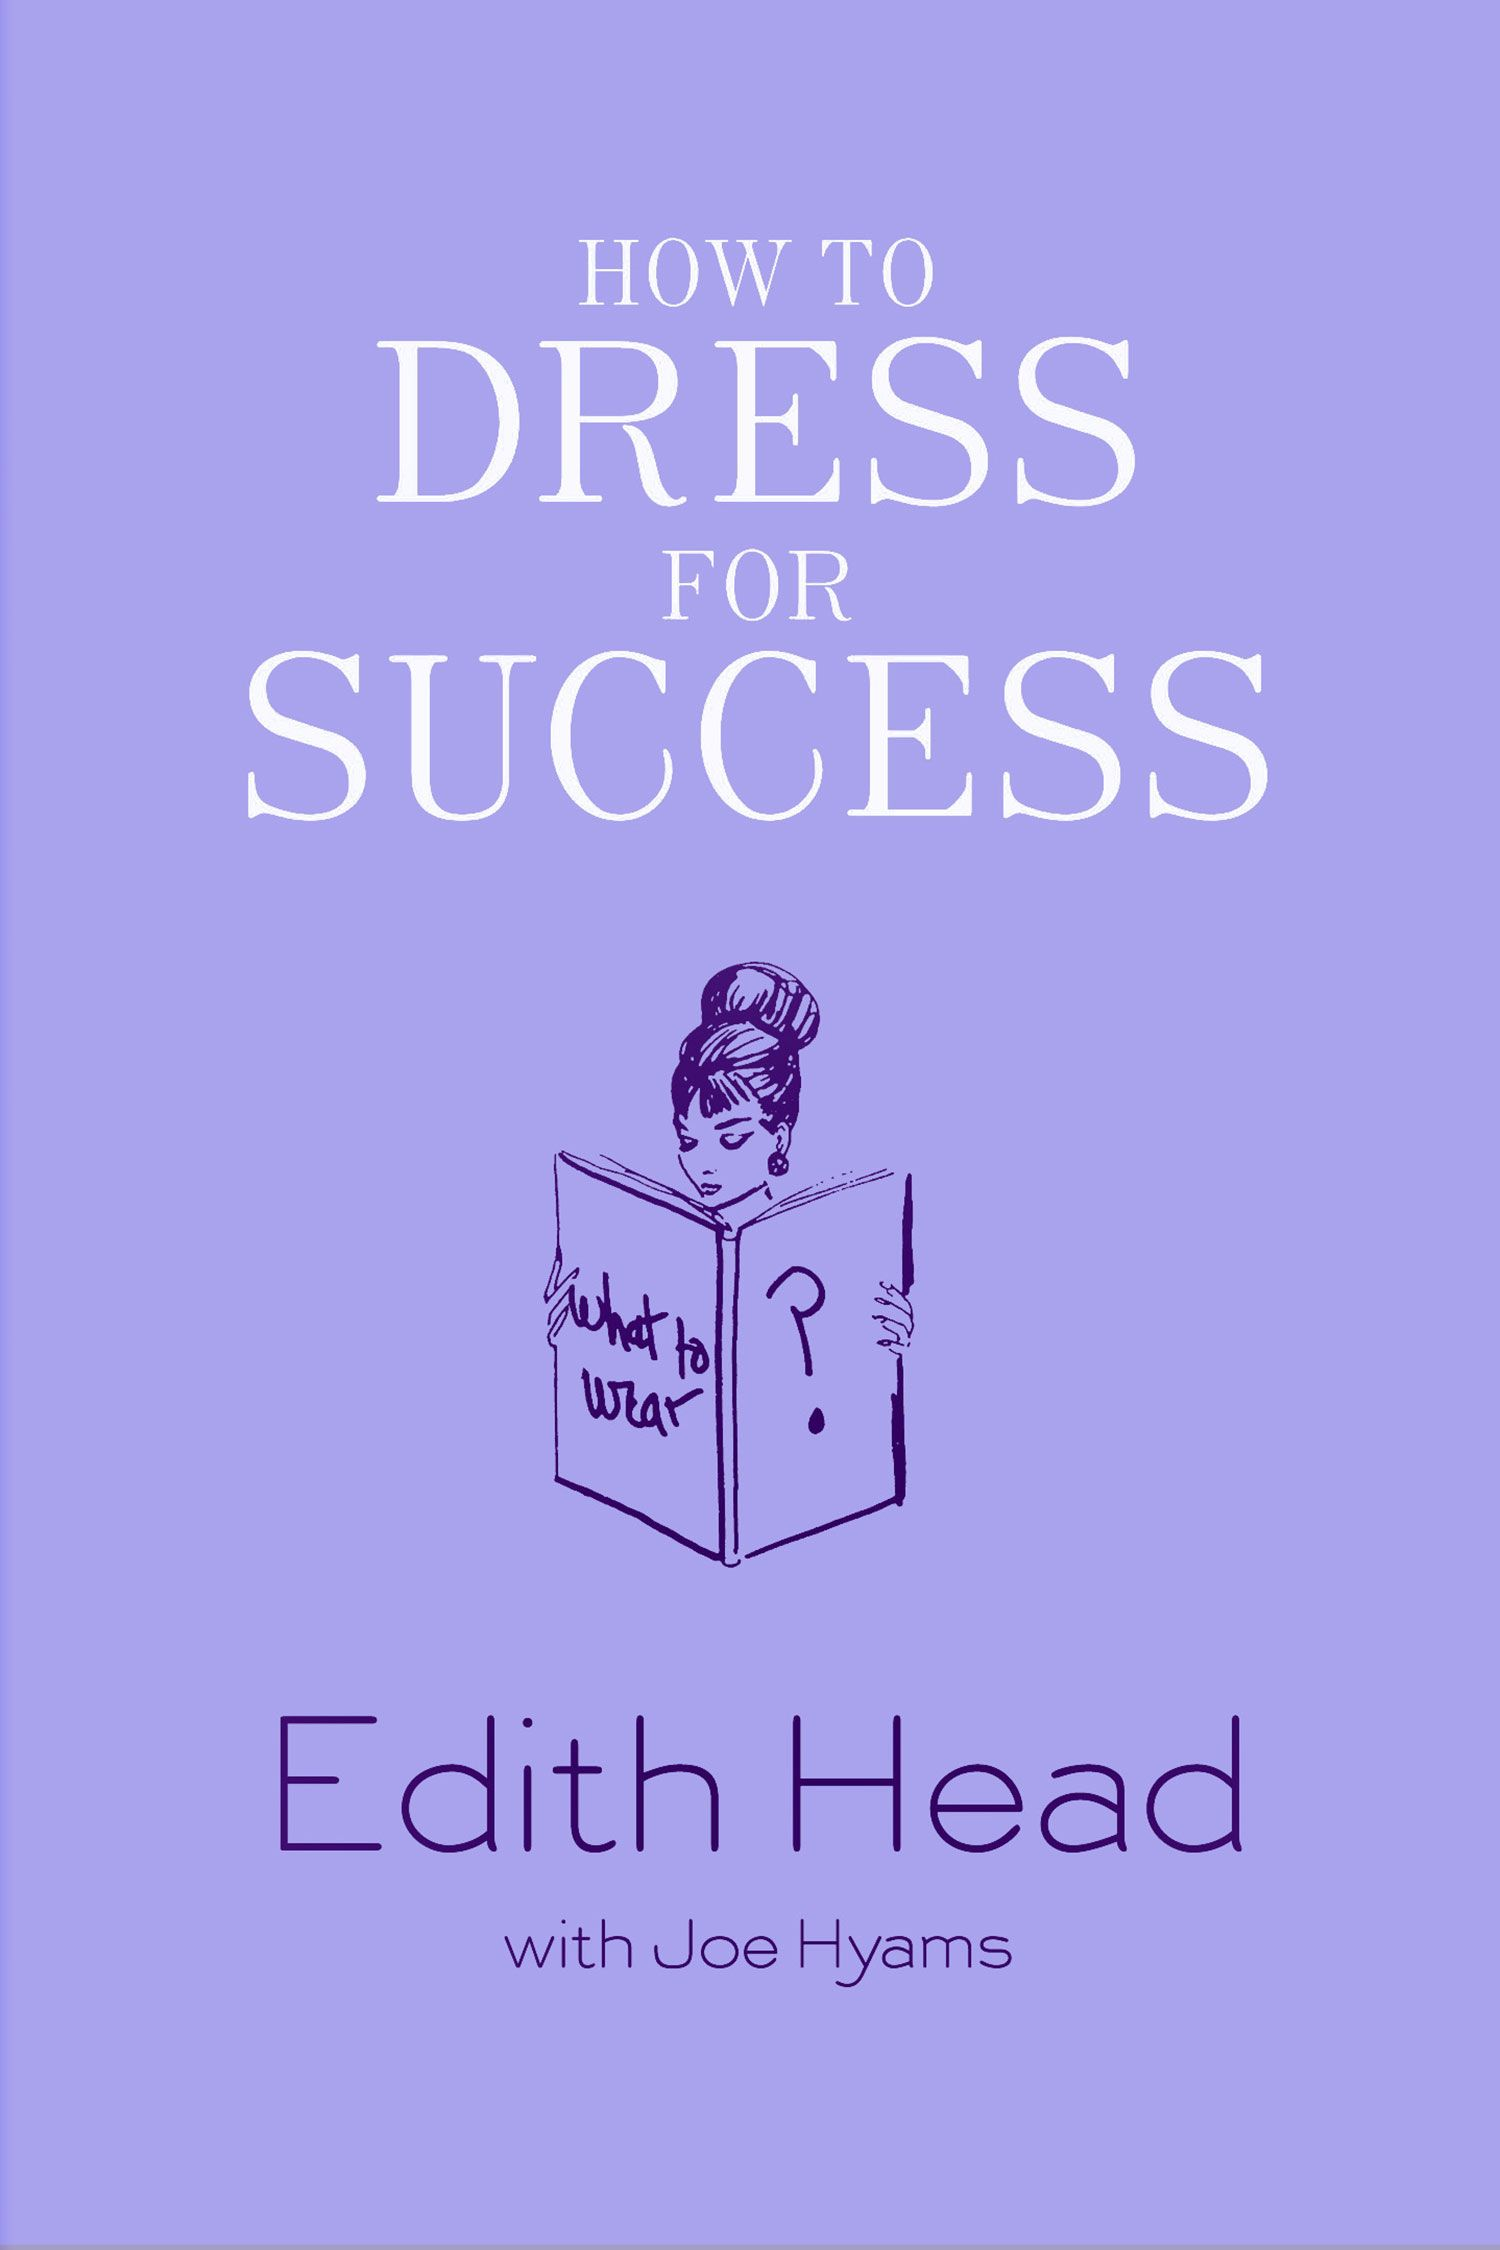 Reading List 13 First Rate Fashion Books Fashion Books Best Fashion Books Dress For Success